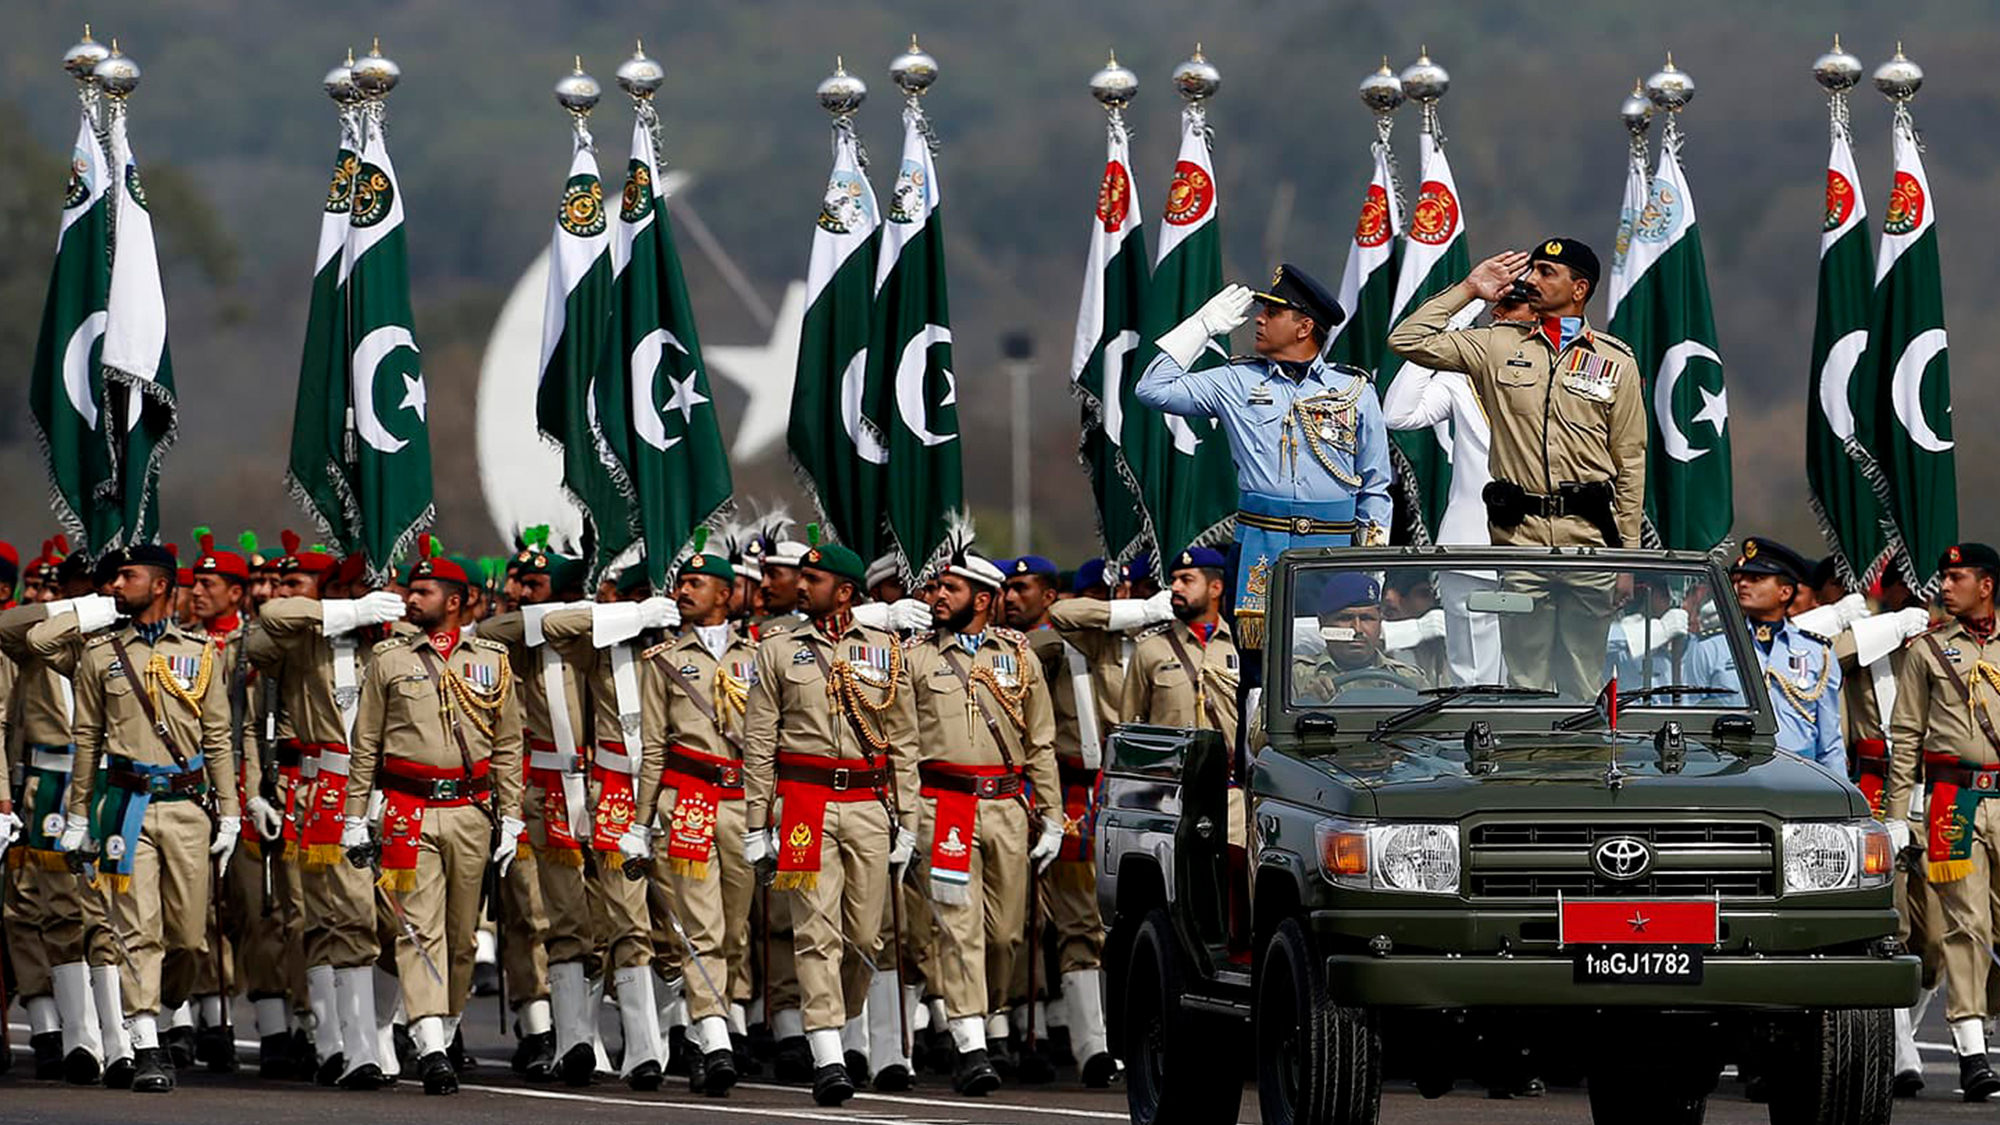 Pakistan has become 20th biggest military spender in 2018